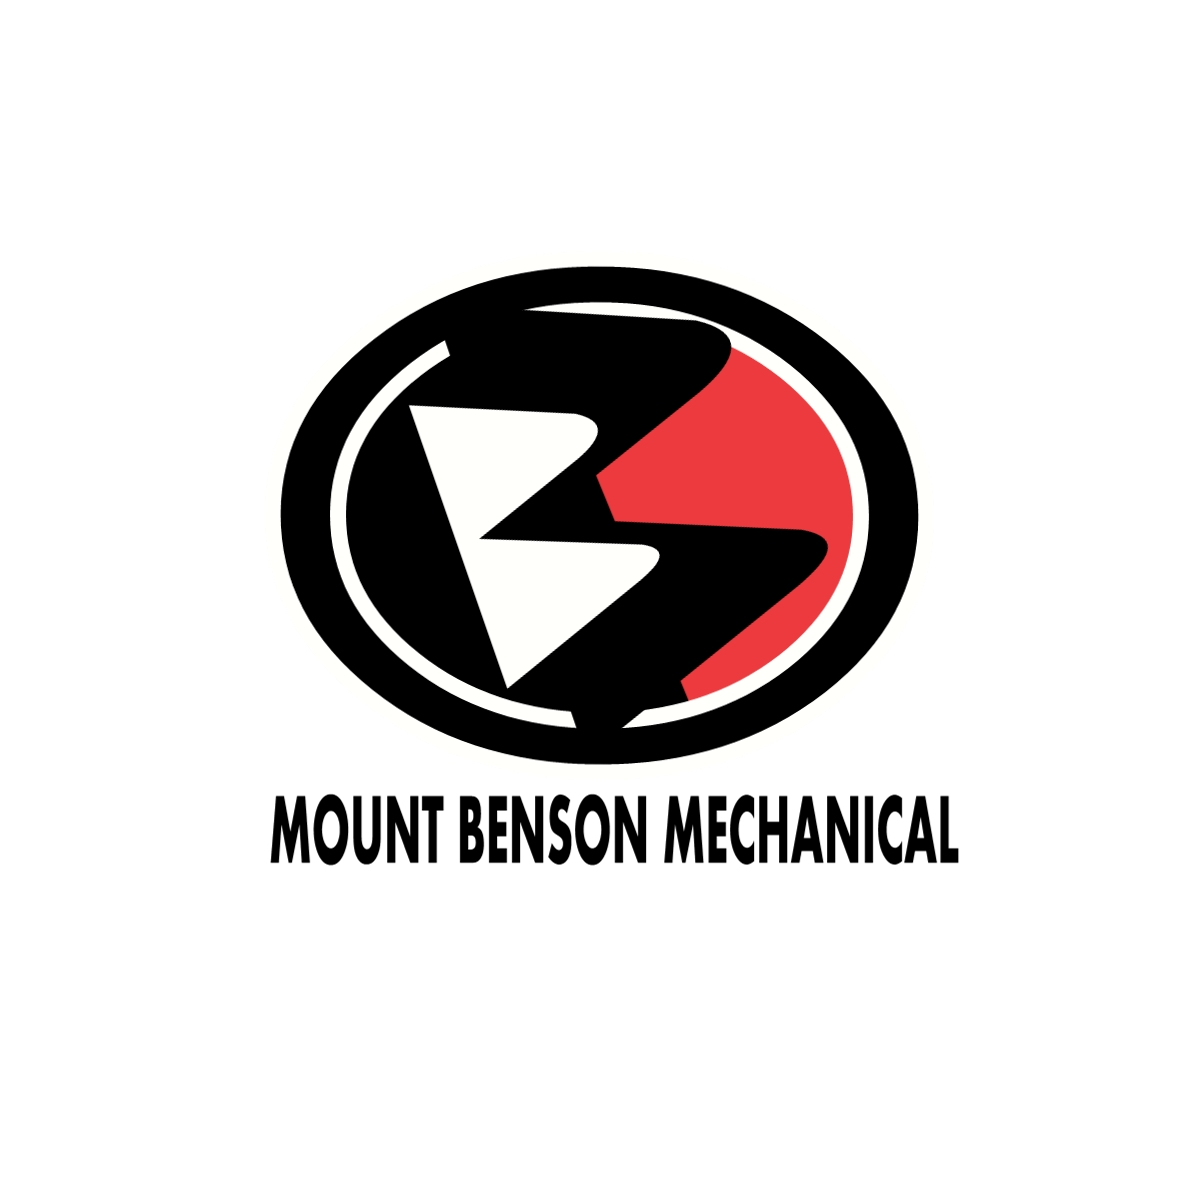 Logo Design by Joseph calunsag Cagaanan - Entry No. 11 in the Logo Design Contest Mount Benson Mechanical.